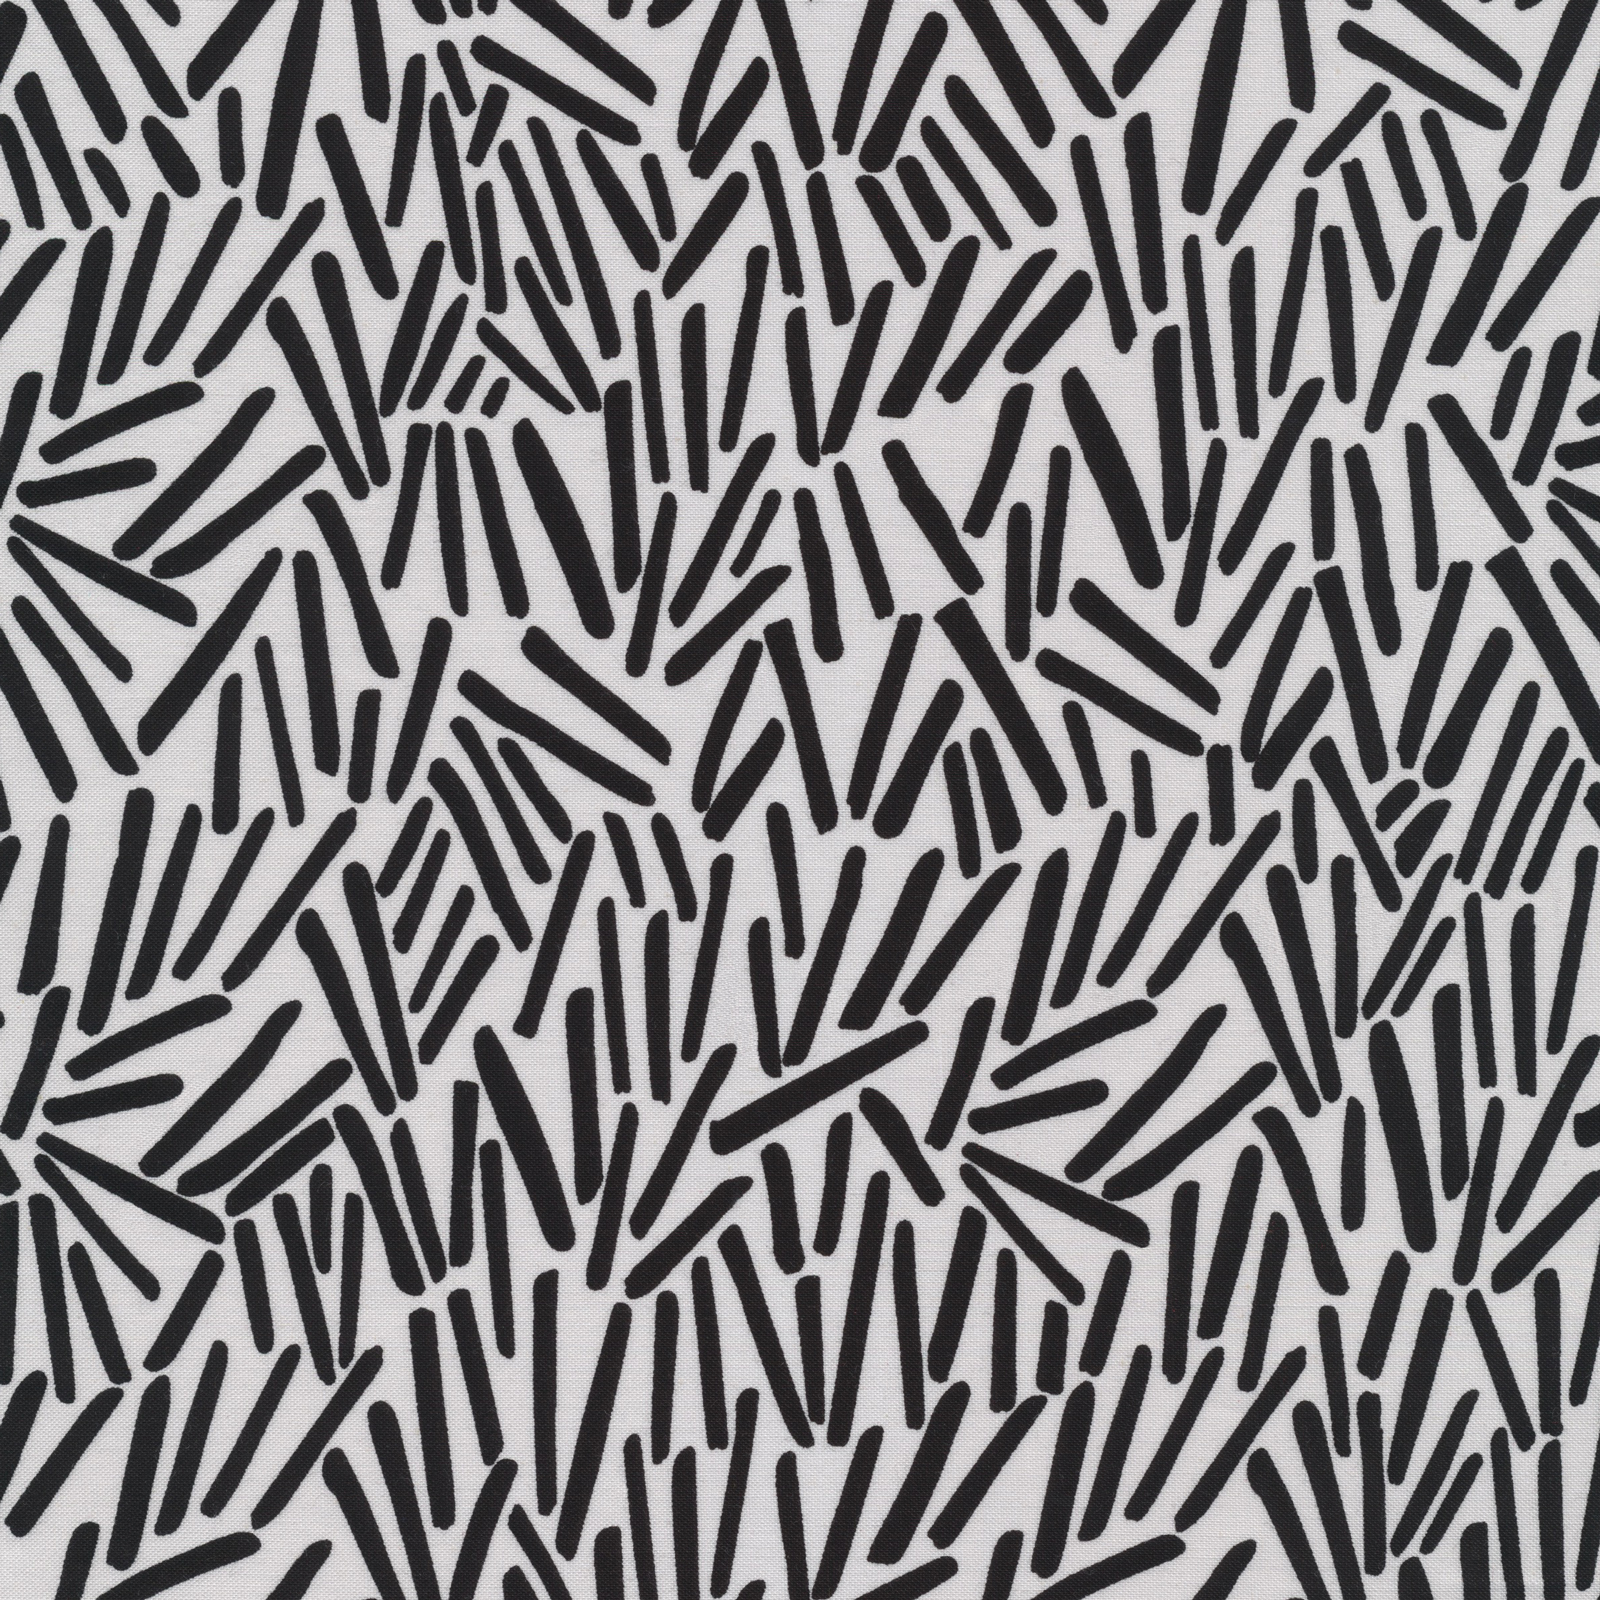 Torotoro from the Wild collection by Cloud9 Fabrics, 100% organic cotton fabric